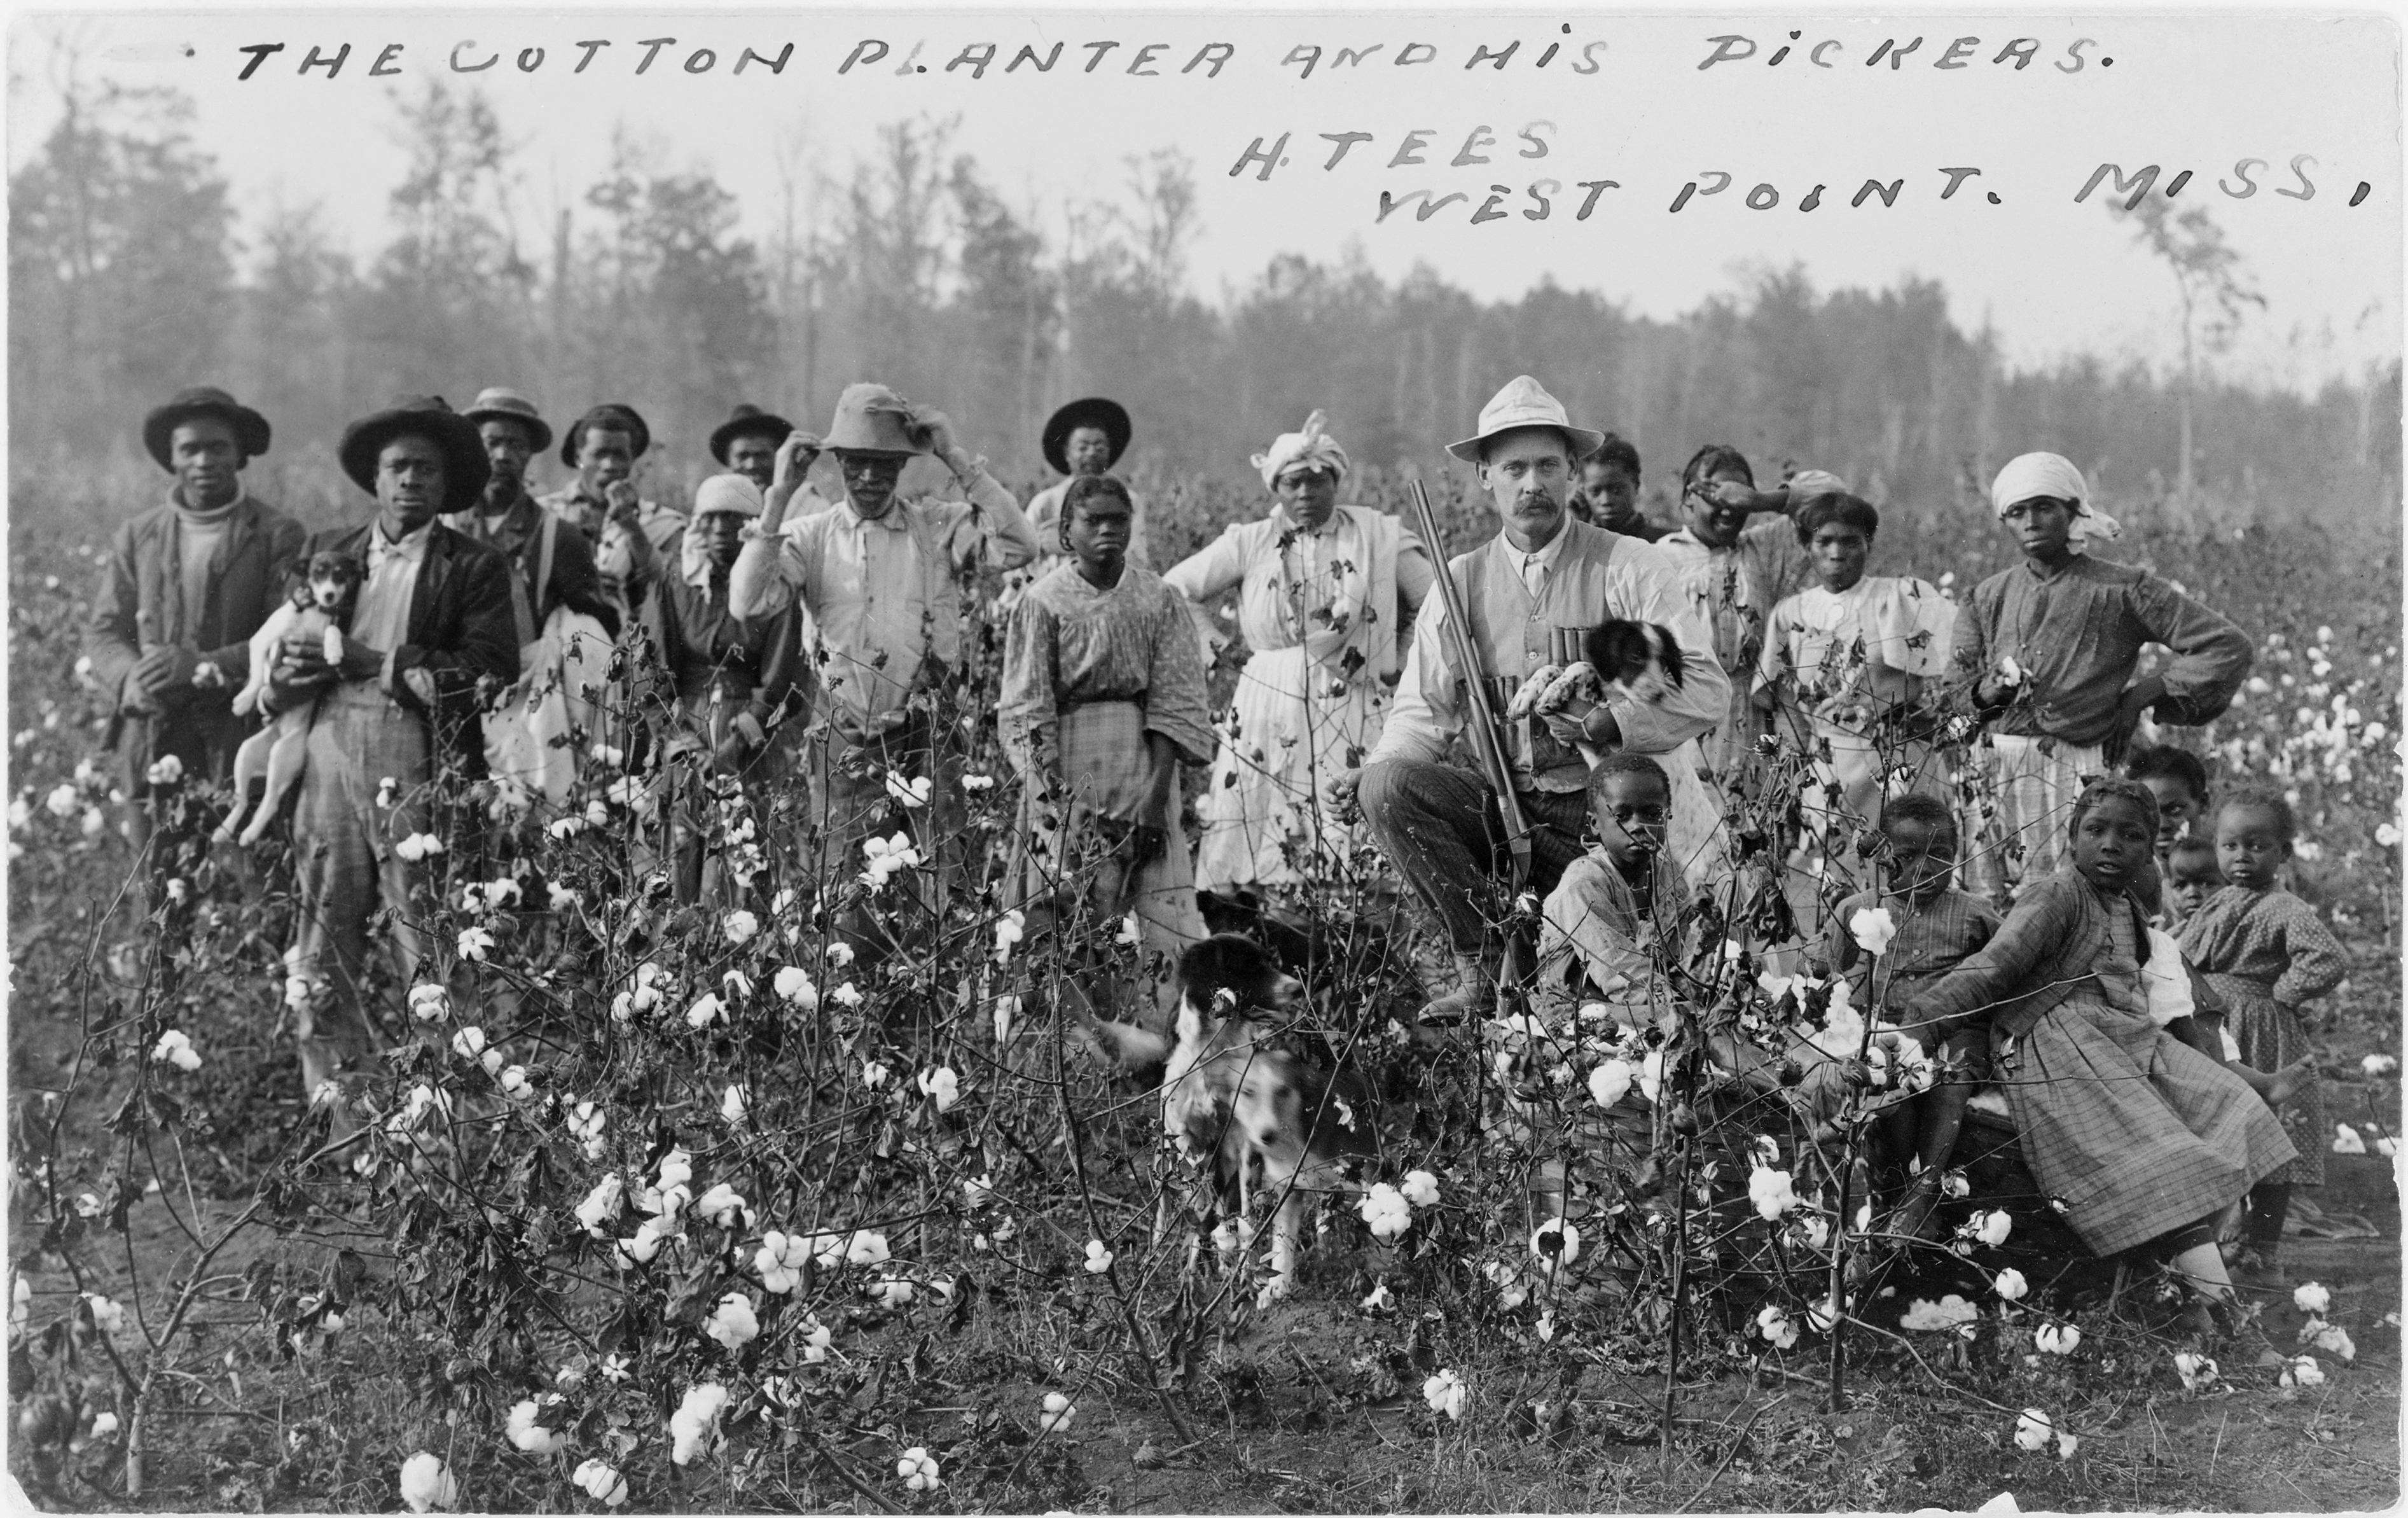 Cotton_planter_and_pickers1908.jpg